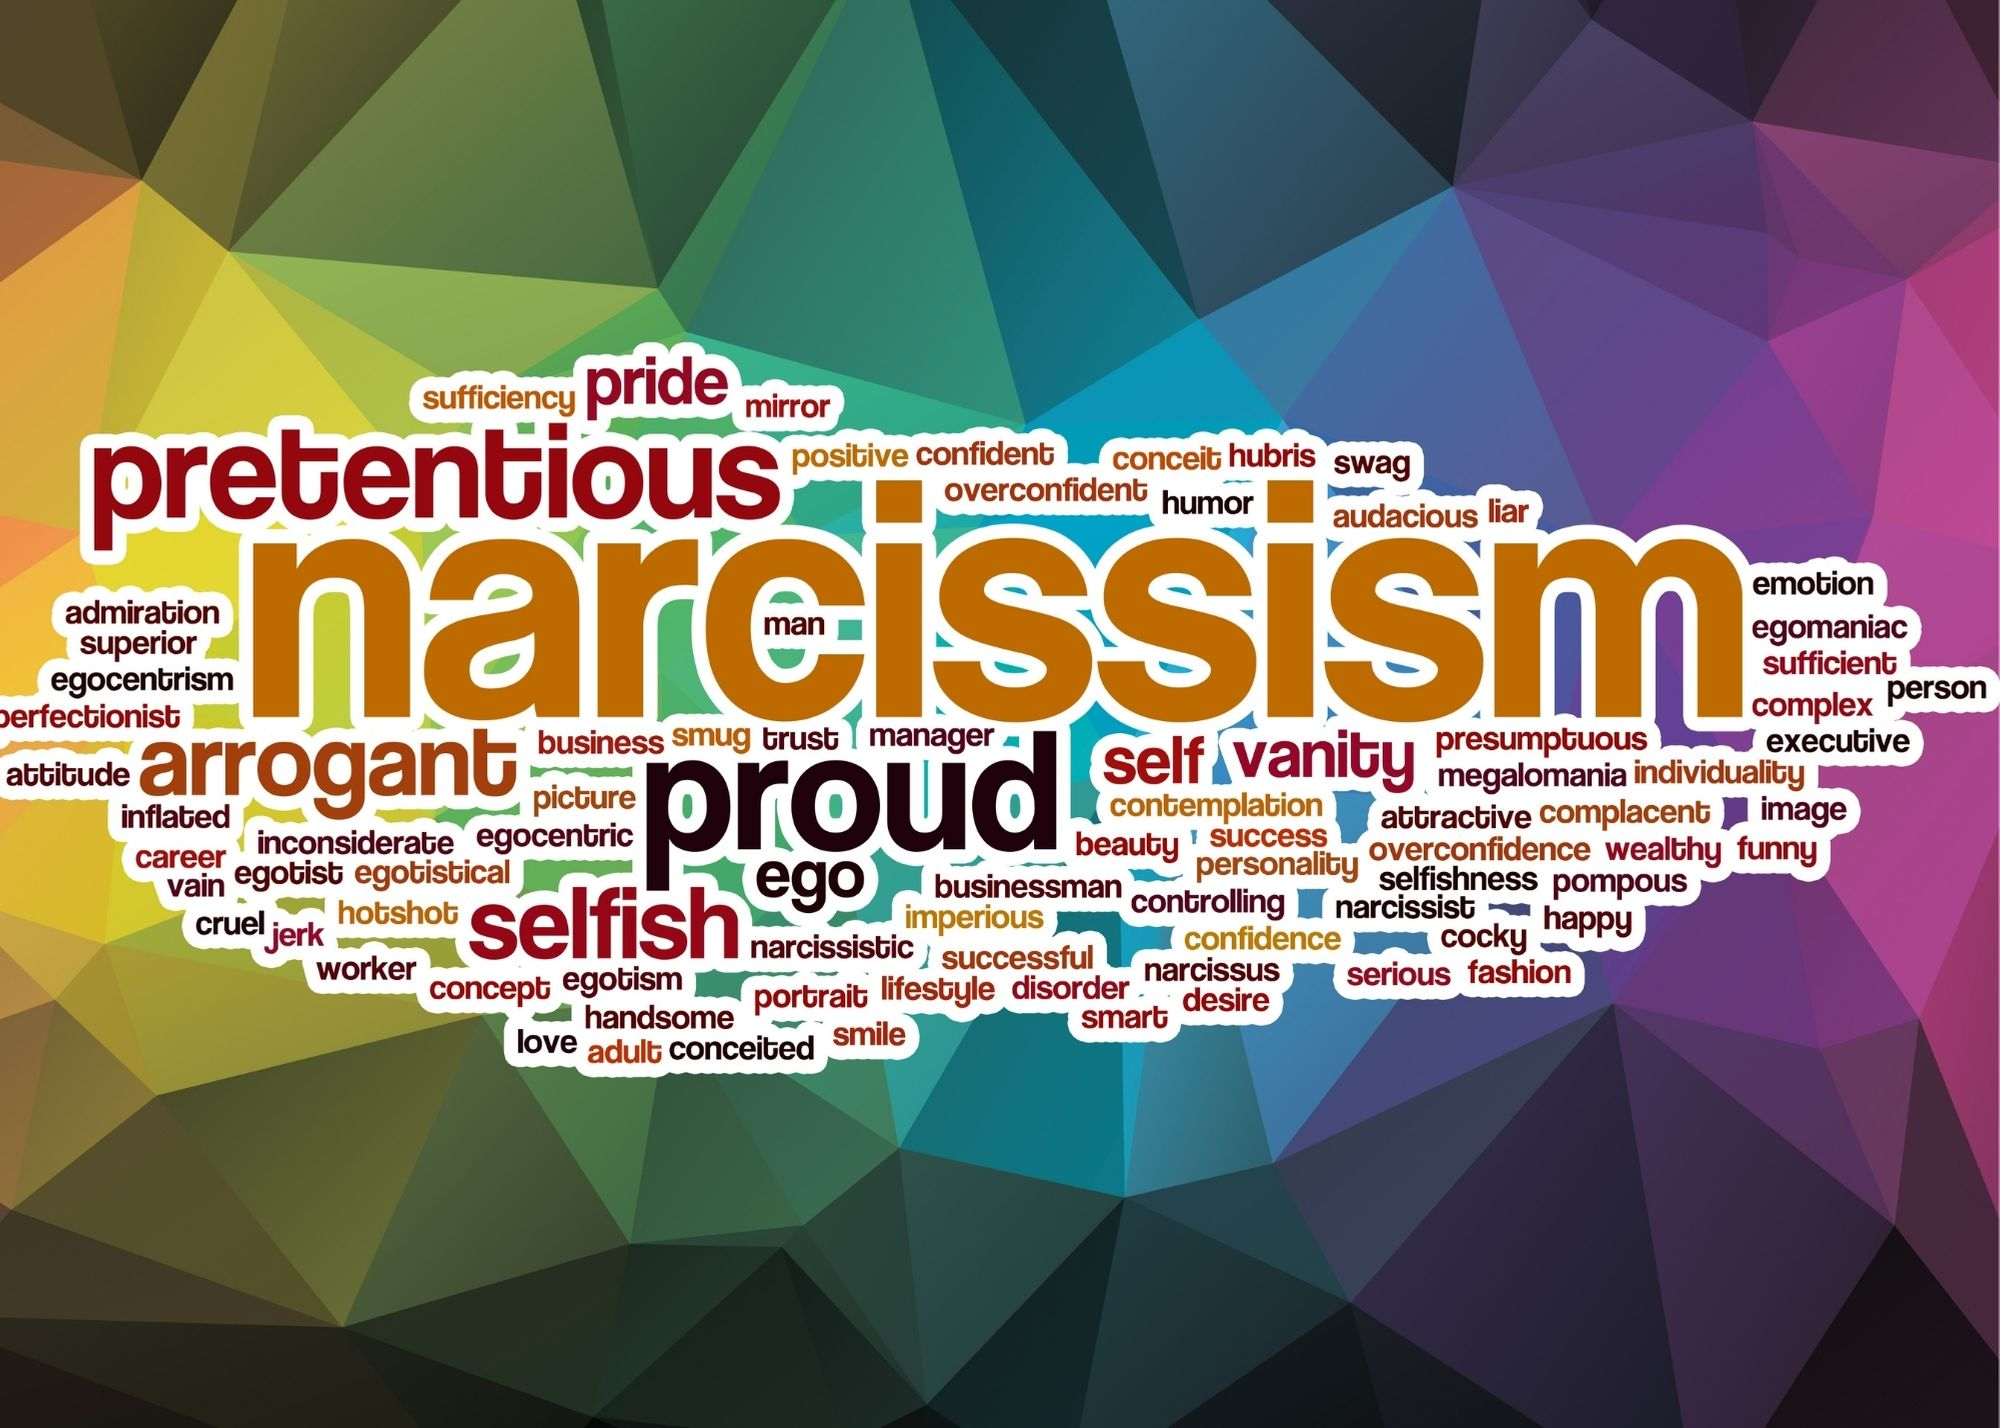 5 Characteristics Of A Narcissist - Narcissism Traits Graphic